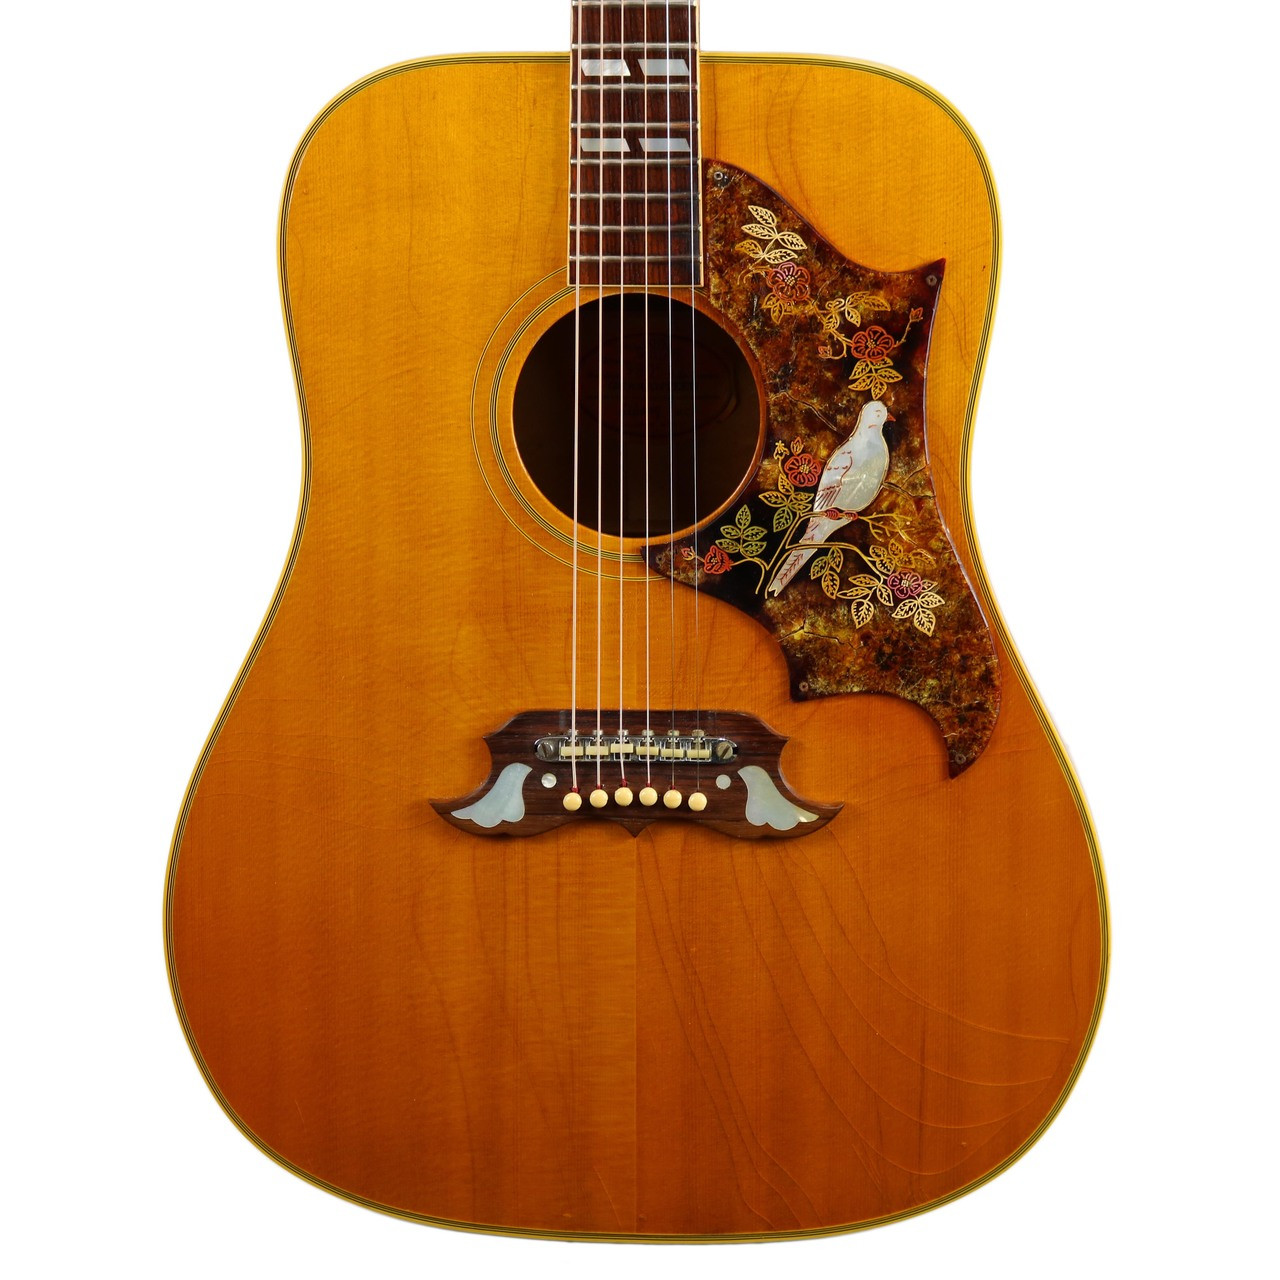 Vintage 1968 Gibson Dove Dreadnought Acoustic Guitar Natural Finish